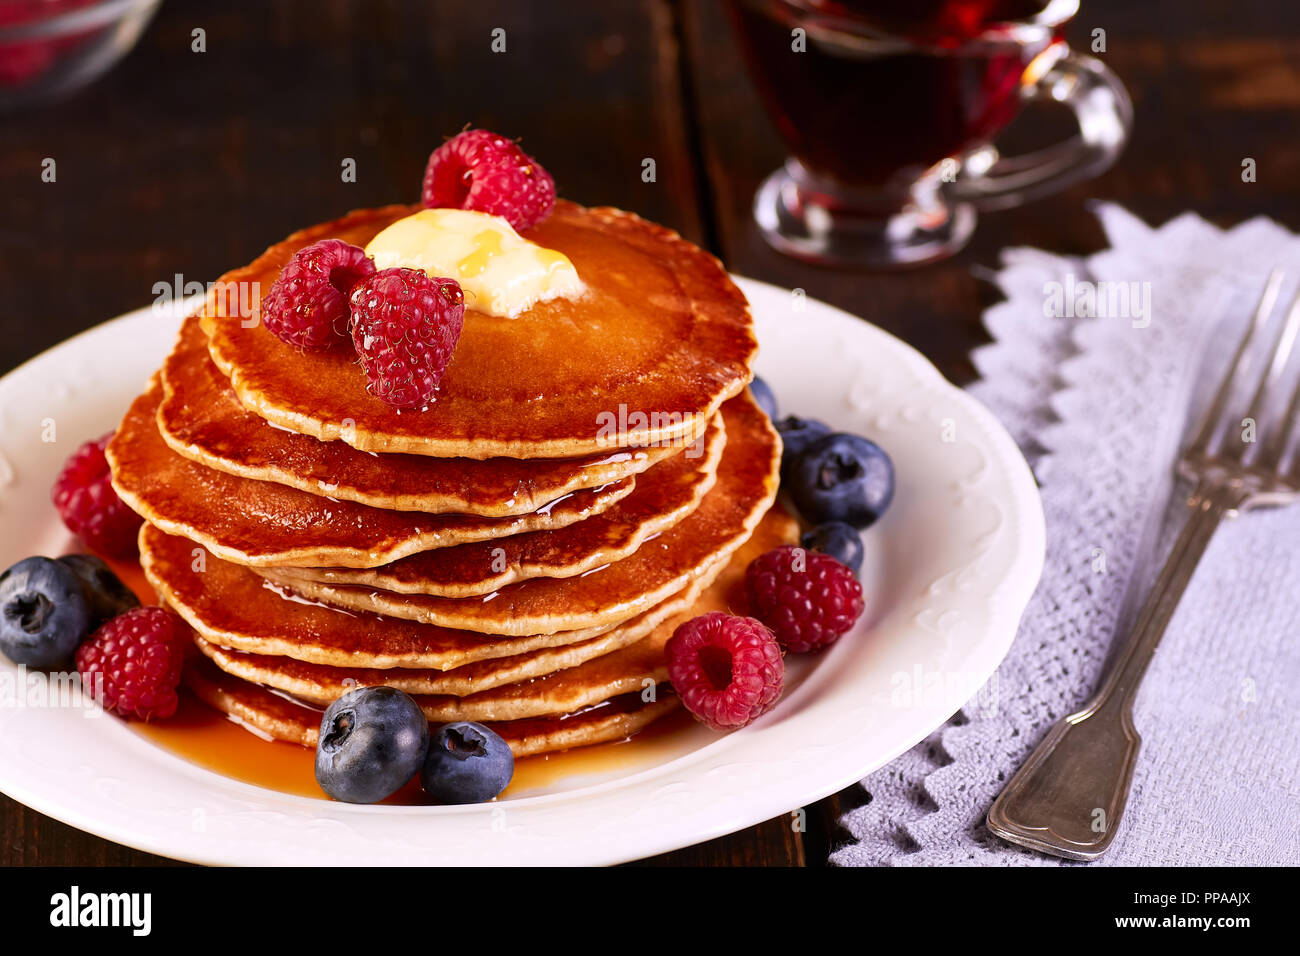 Pancakes with fresh berries and maple syrup on wooden table - Stock Image